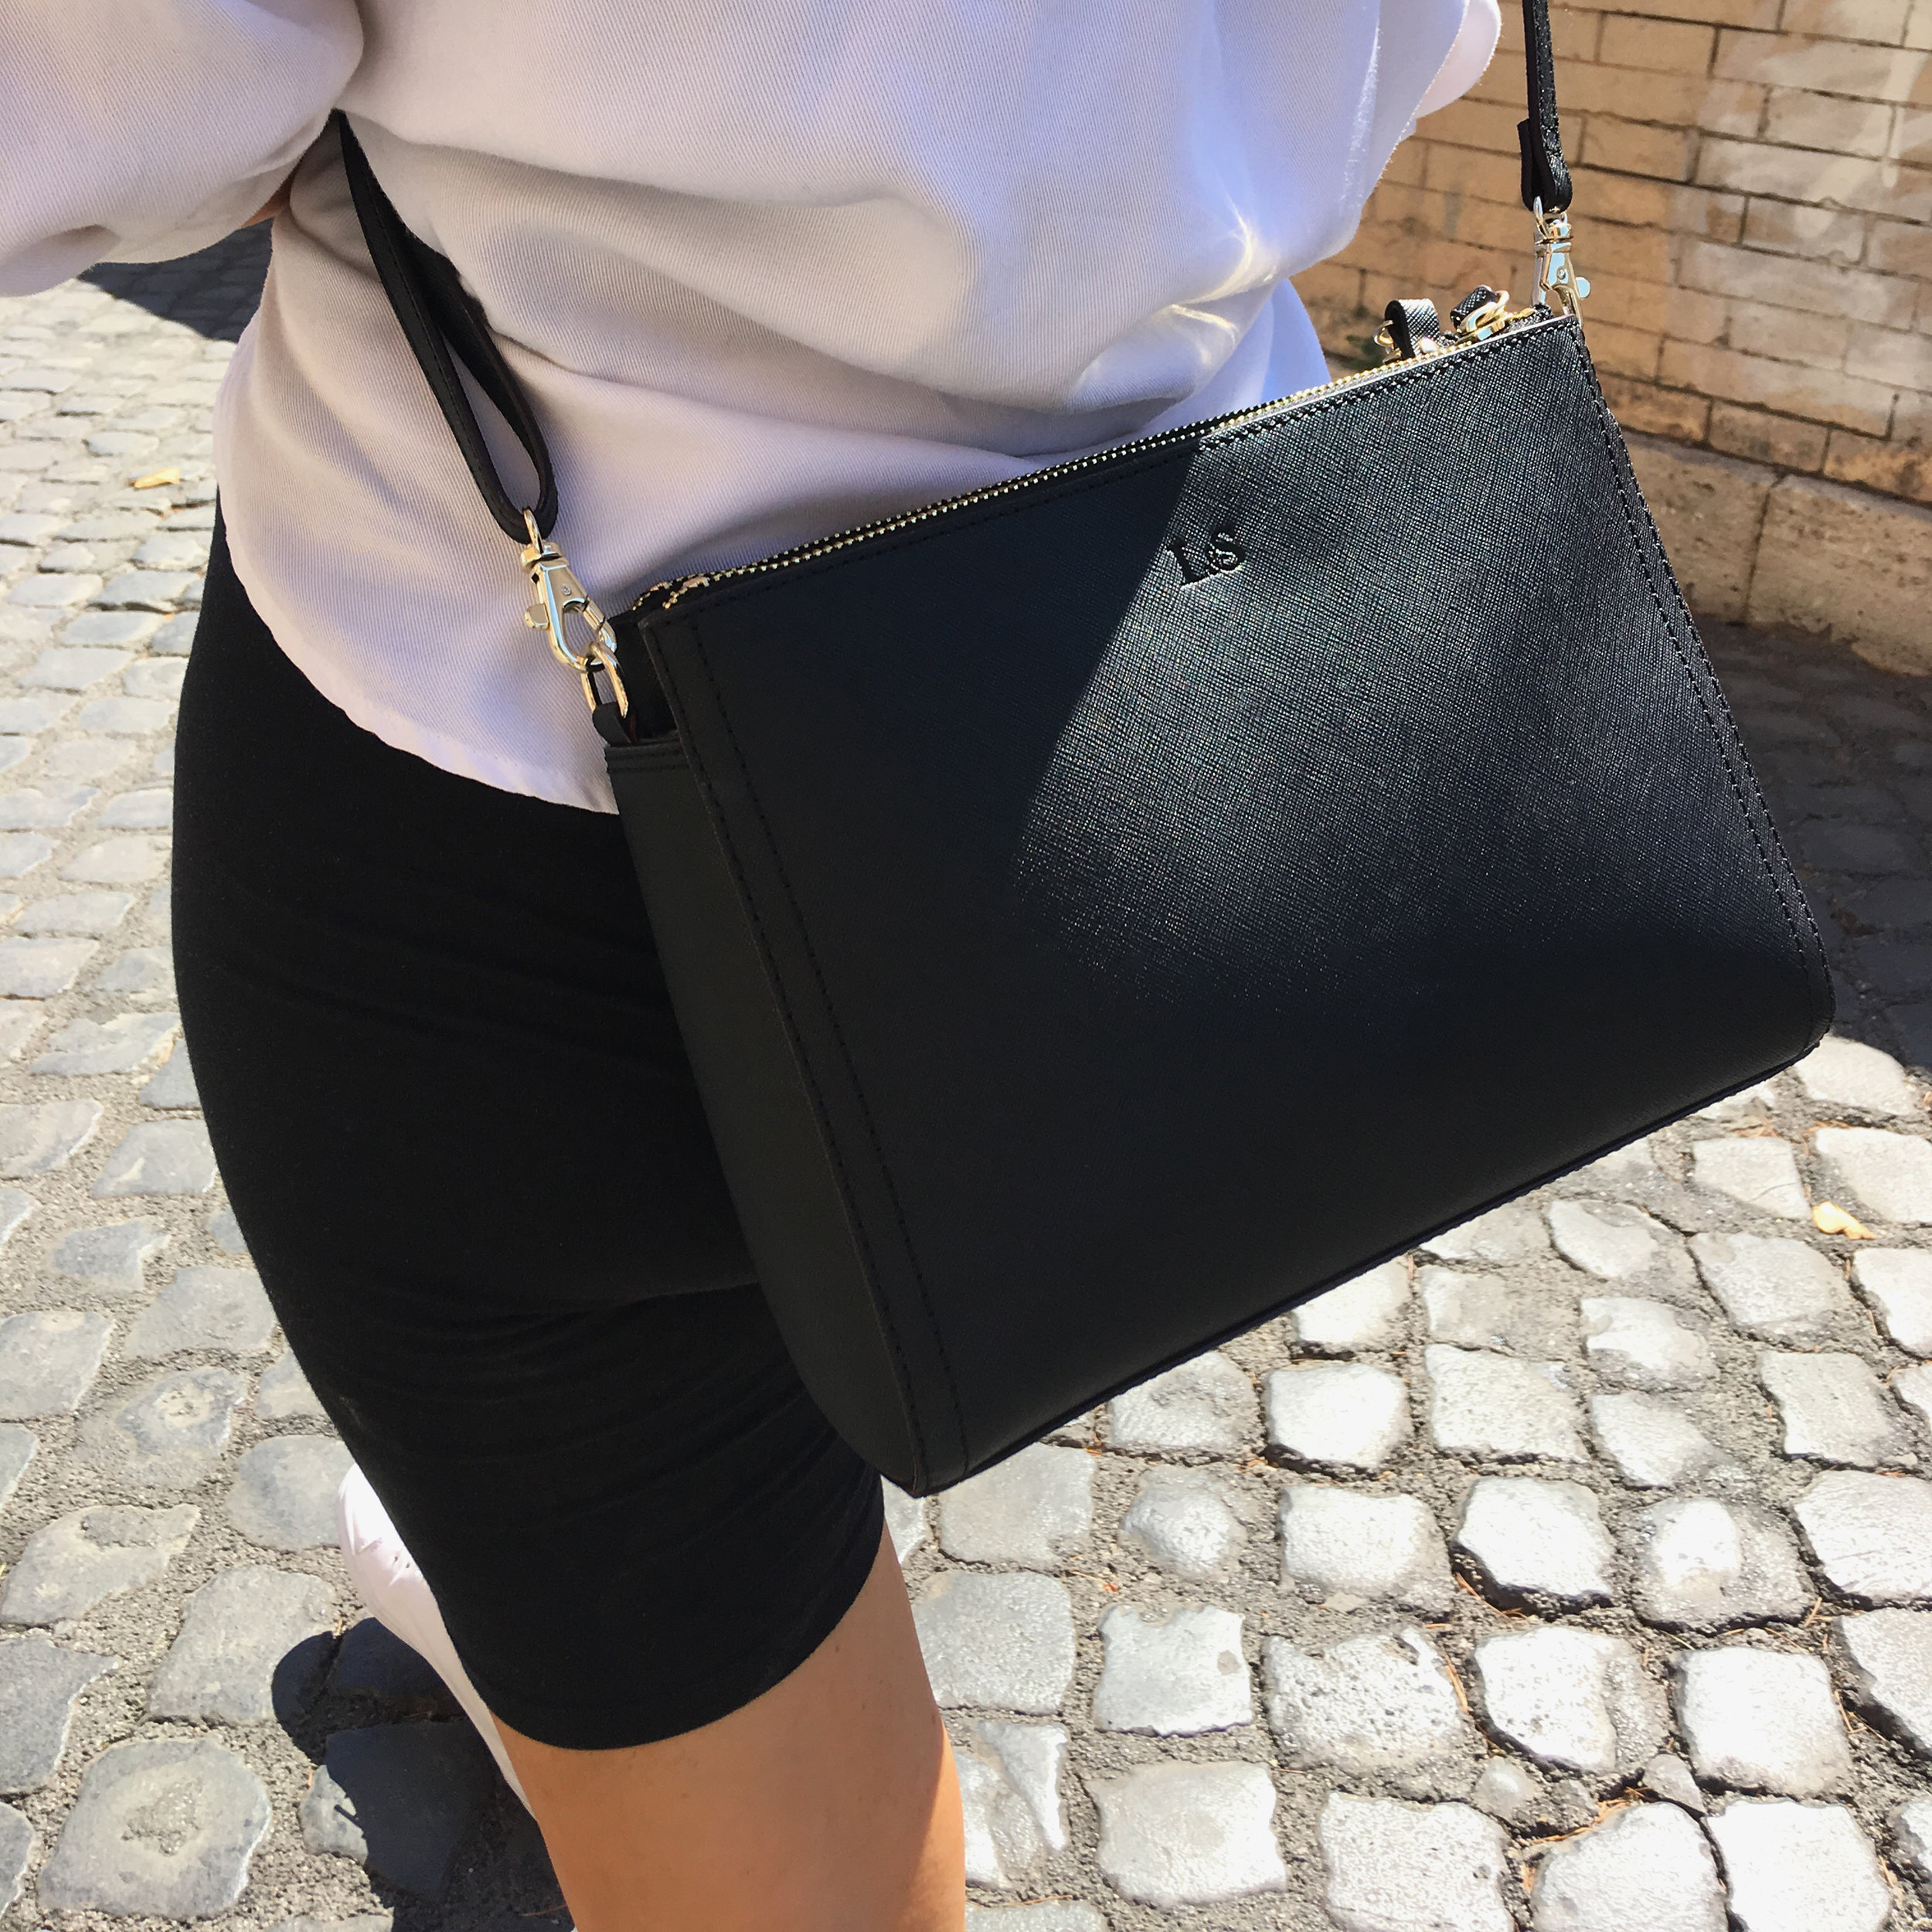 Lo&Sons    The Pearl Leather Crossbody & Clutch Bag, Rome Italy 2019